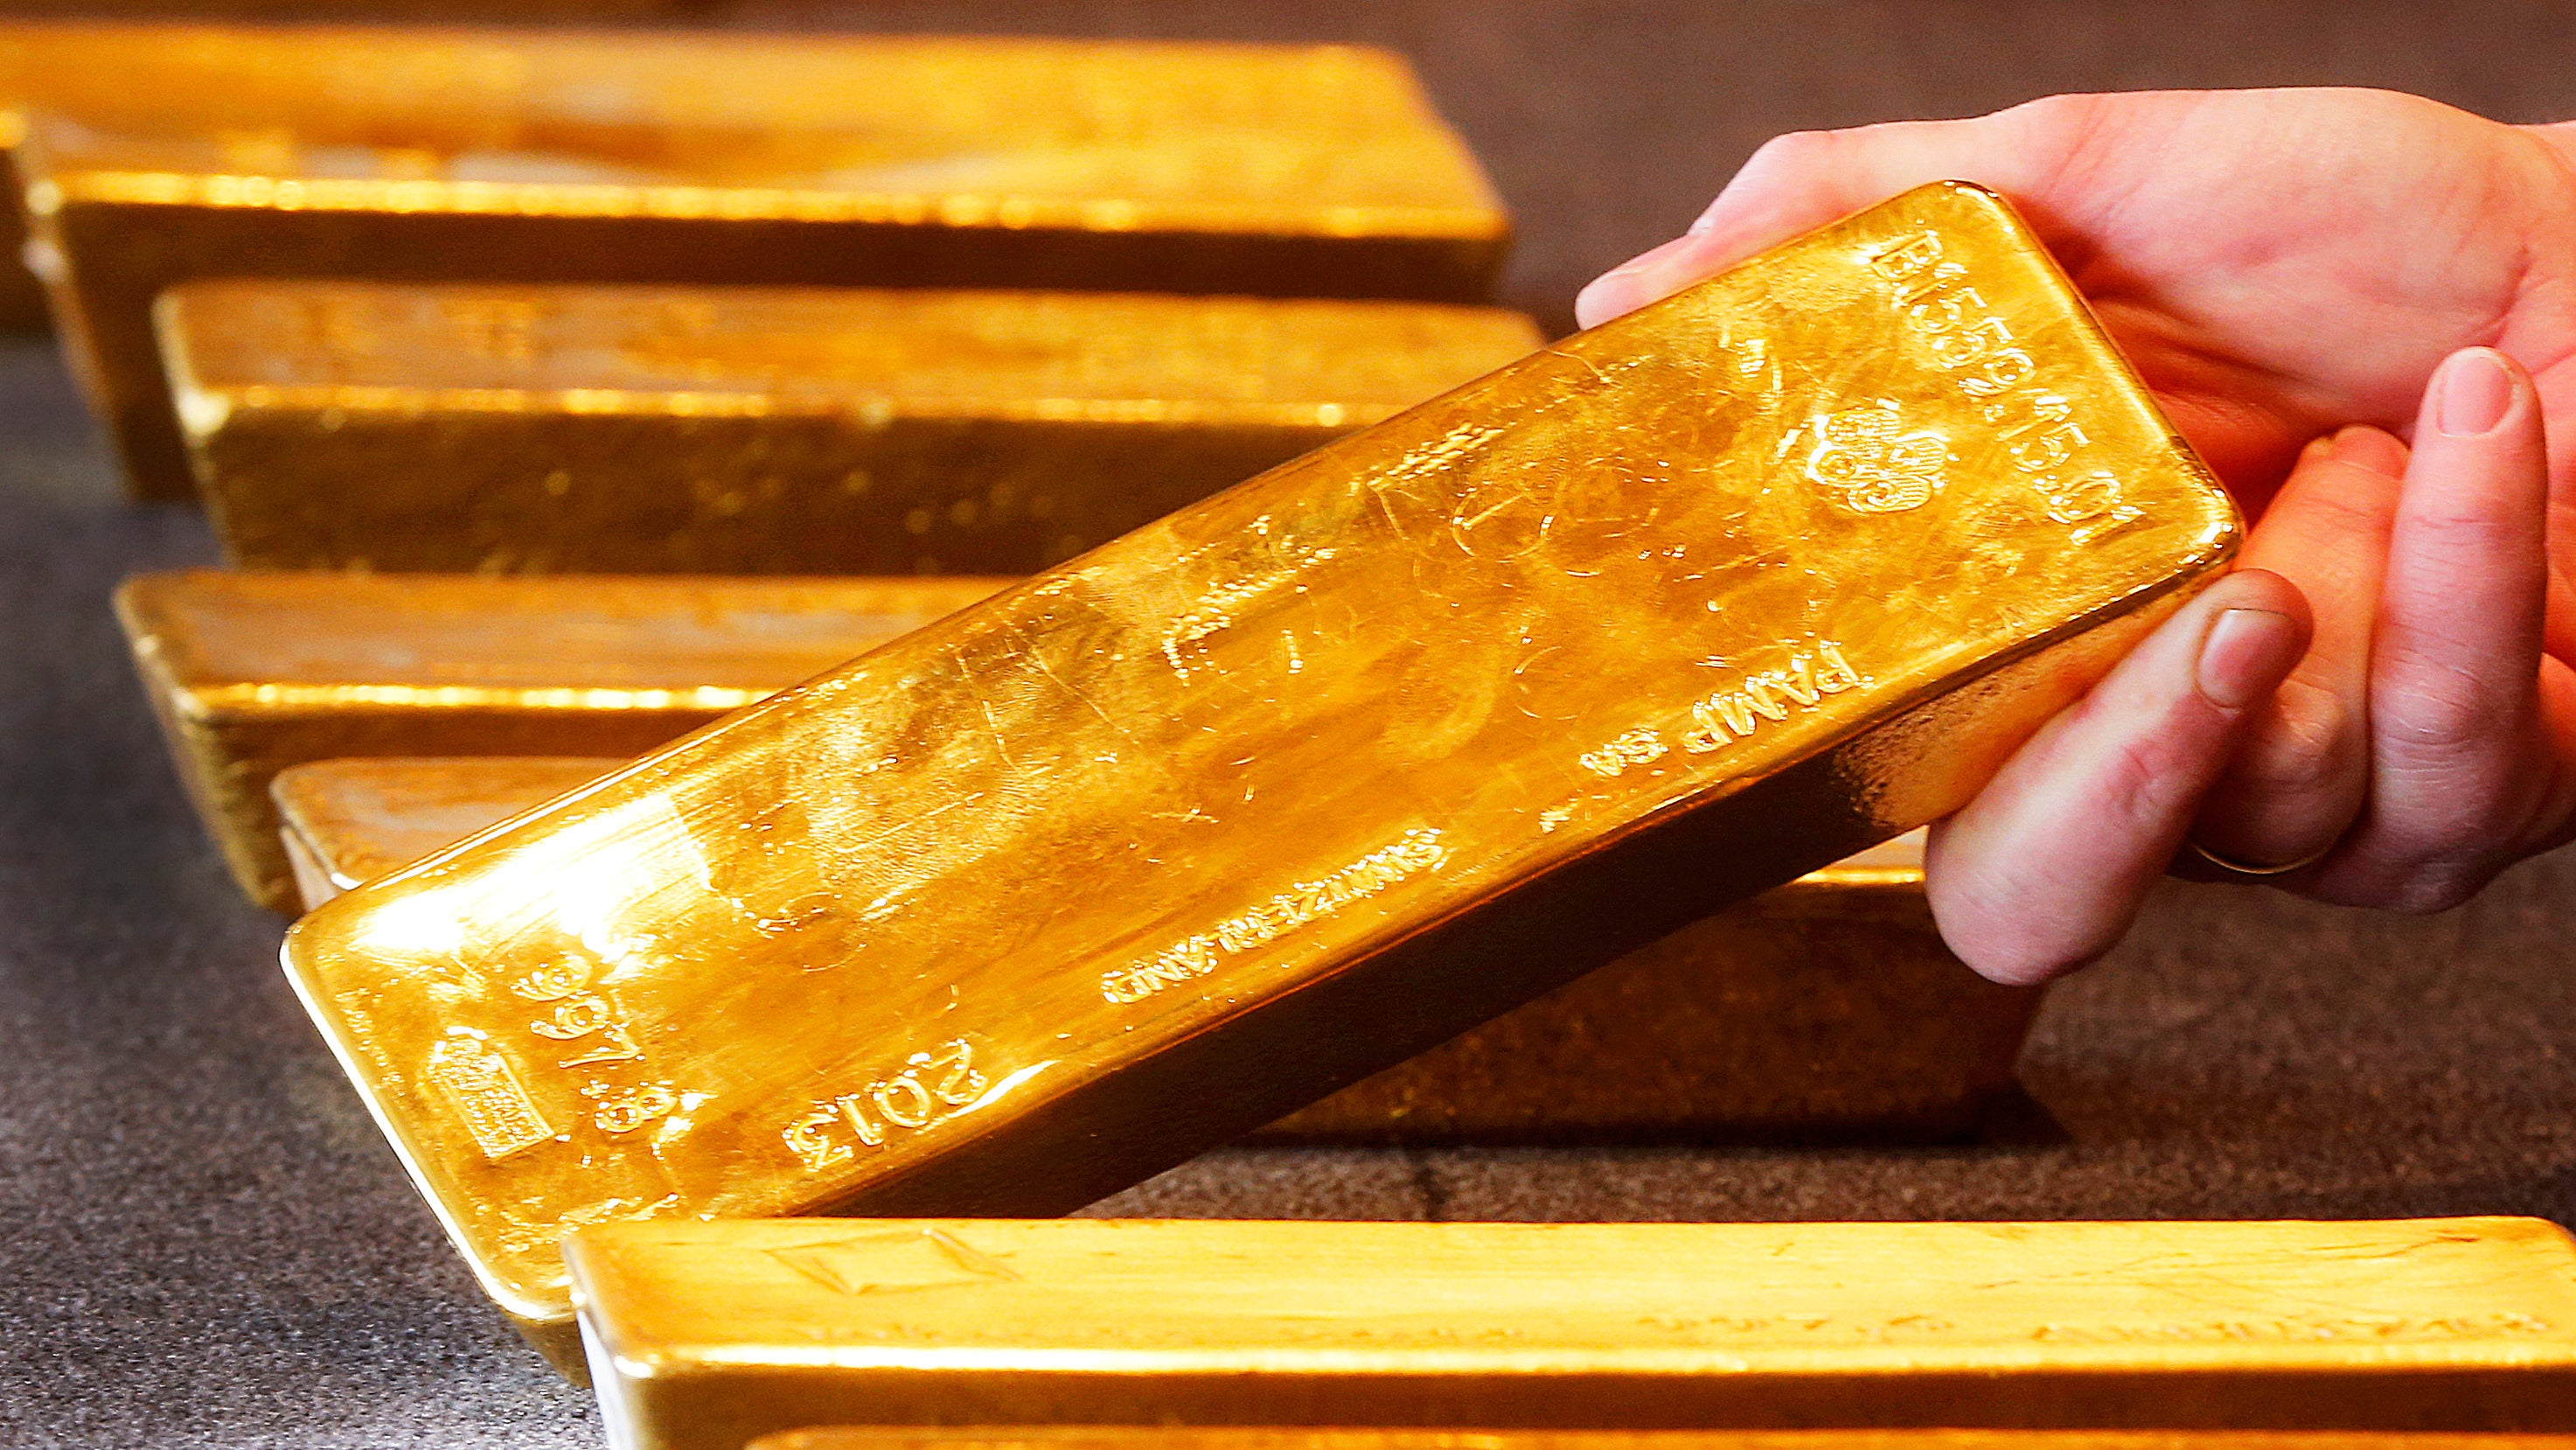 Not the actual gold that was lost but can you imagine losing this shit? Photo Michael Probst (Associated Press) & Russian Plane Loses $378 Million In Gold After Door Breaks Upon Takeoff